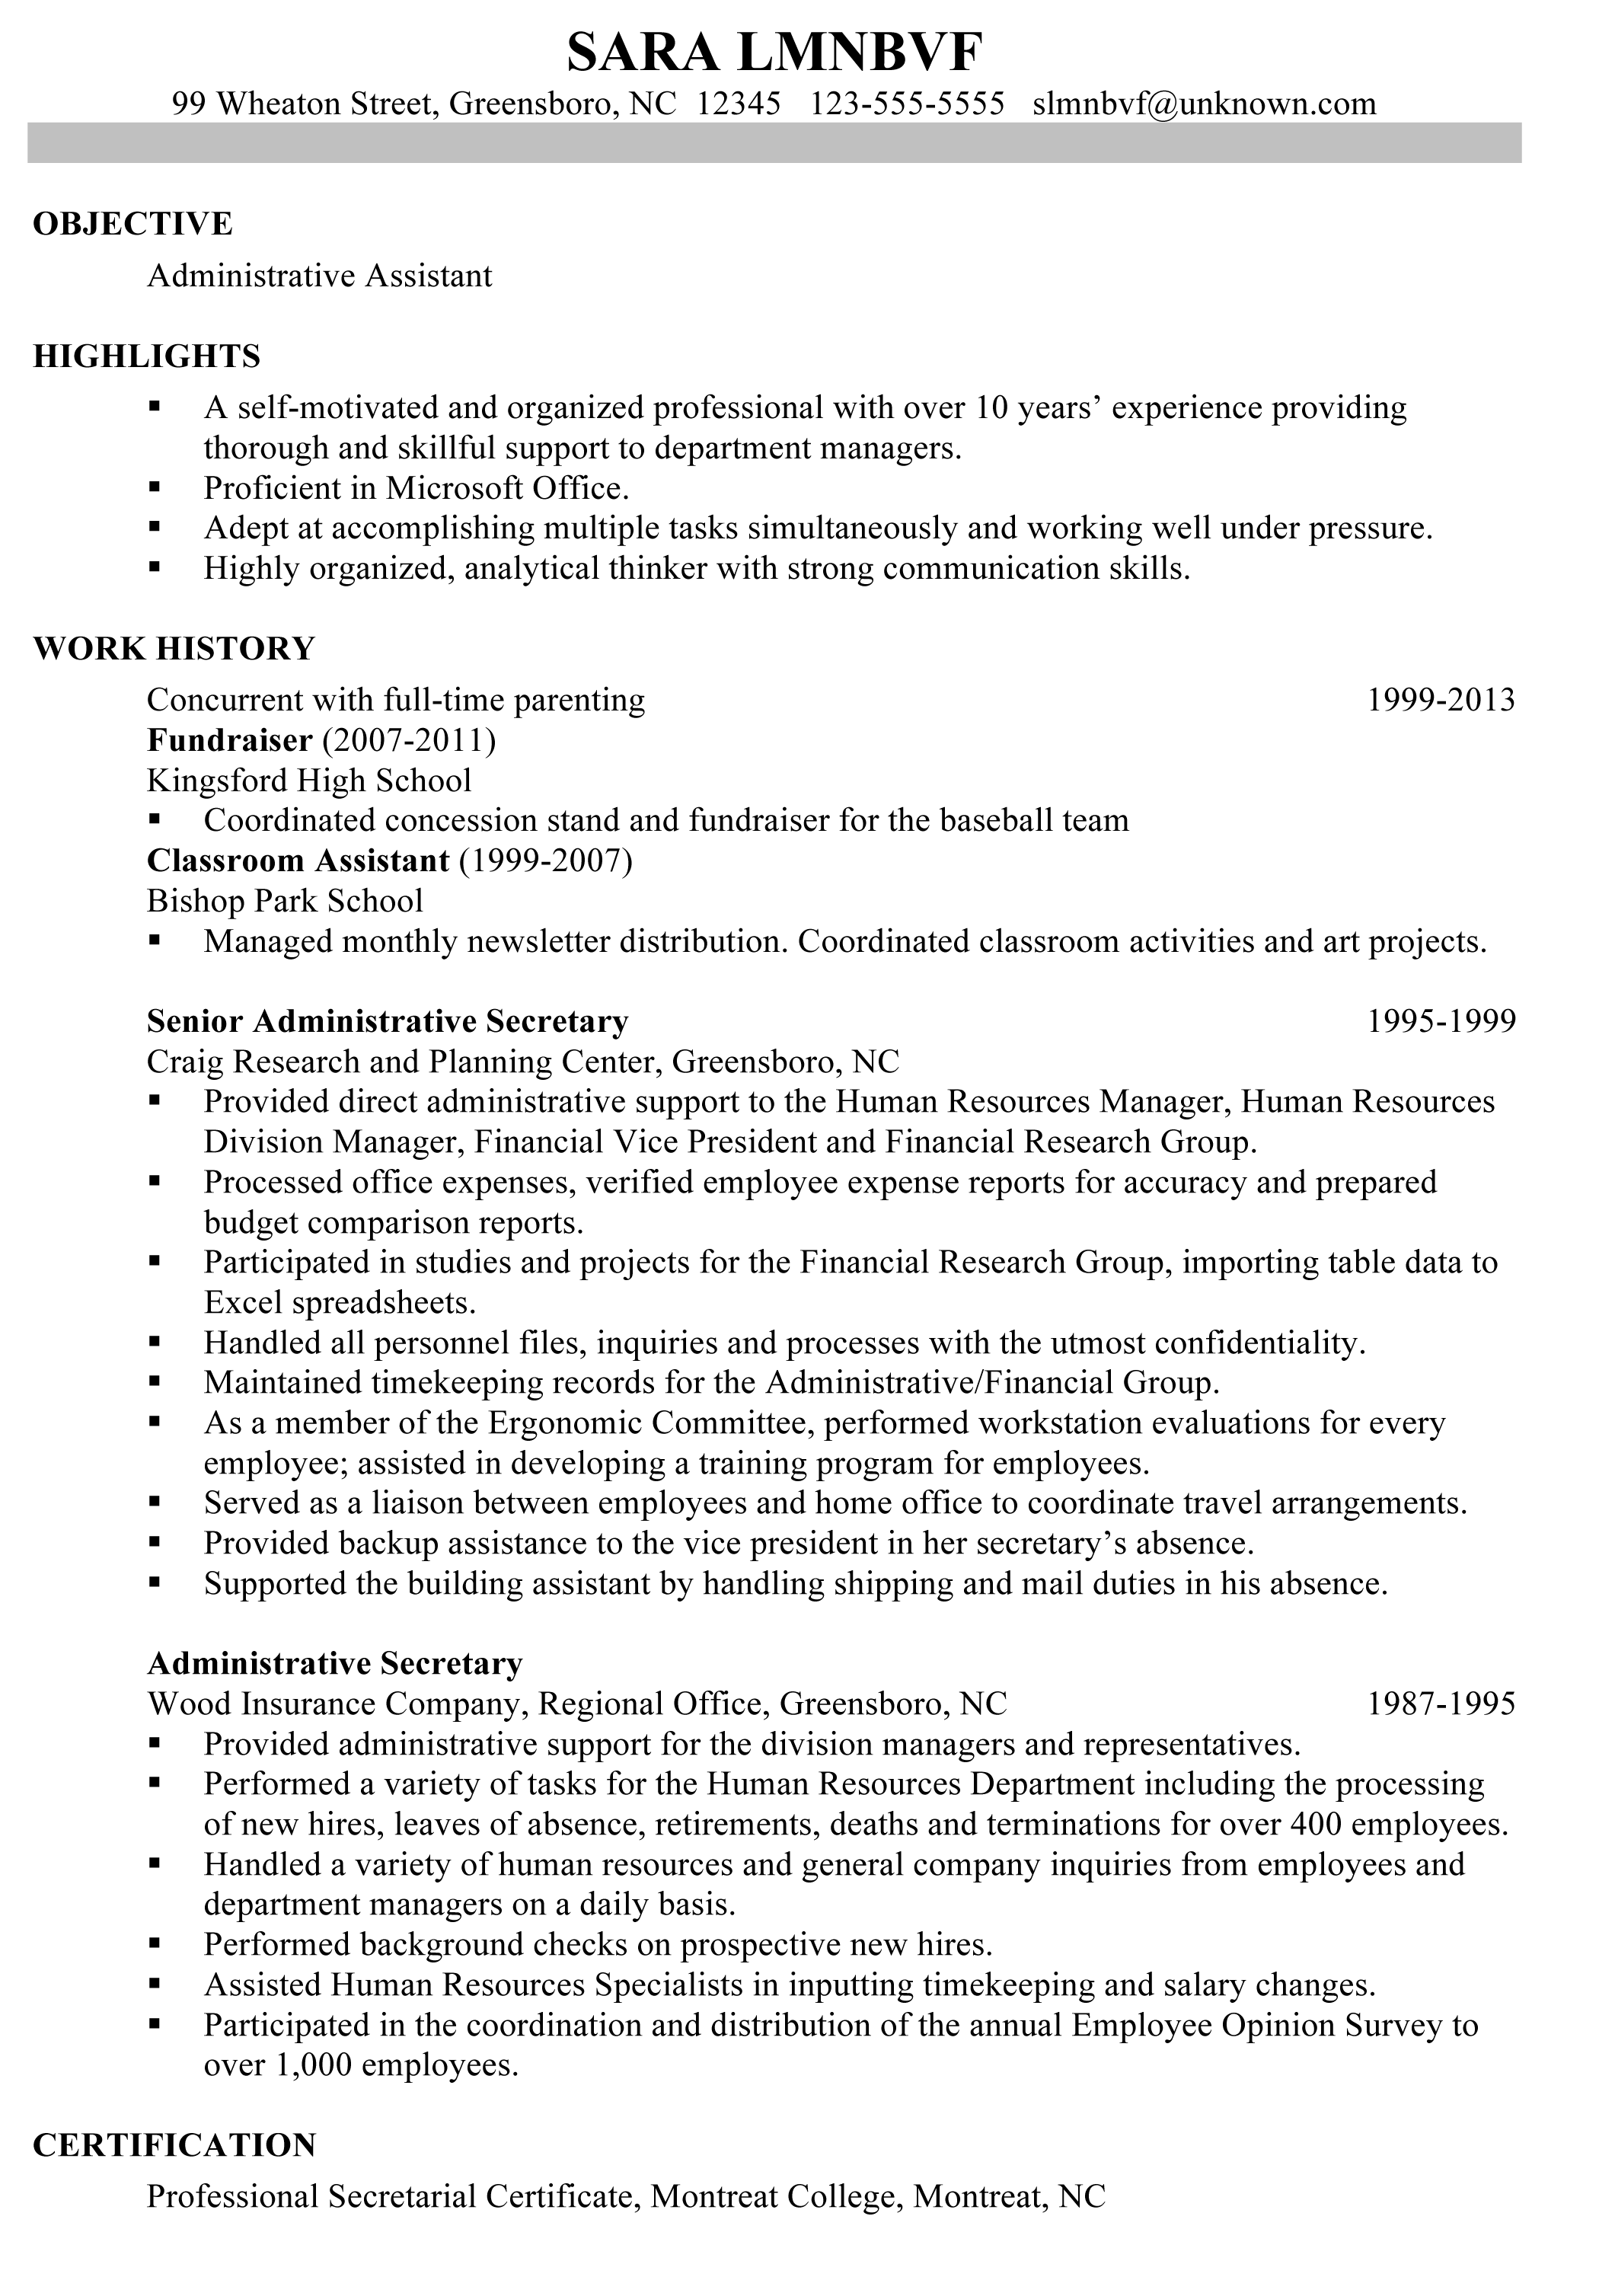 Chronological Resume Template Chronological Resume Sample Administrative Assistant  Resume